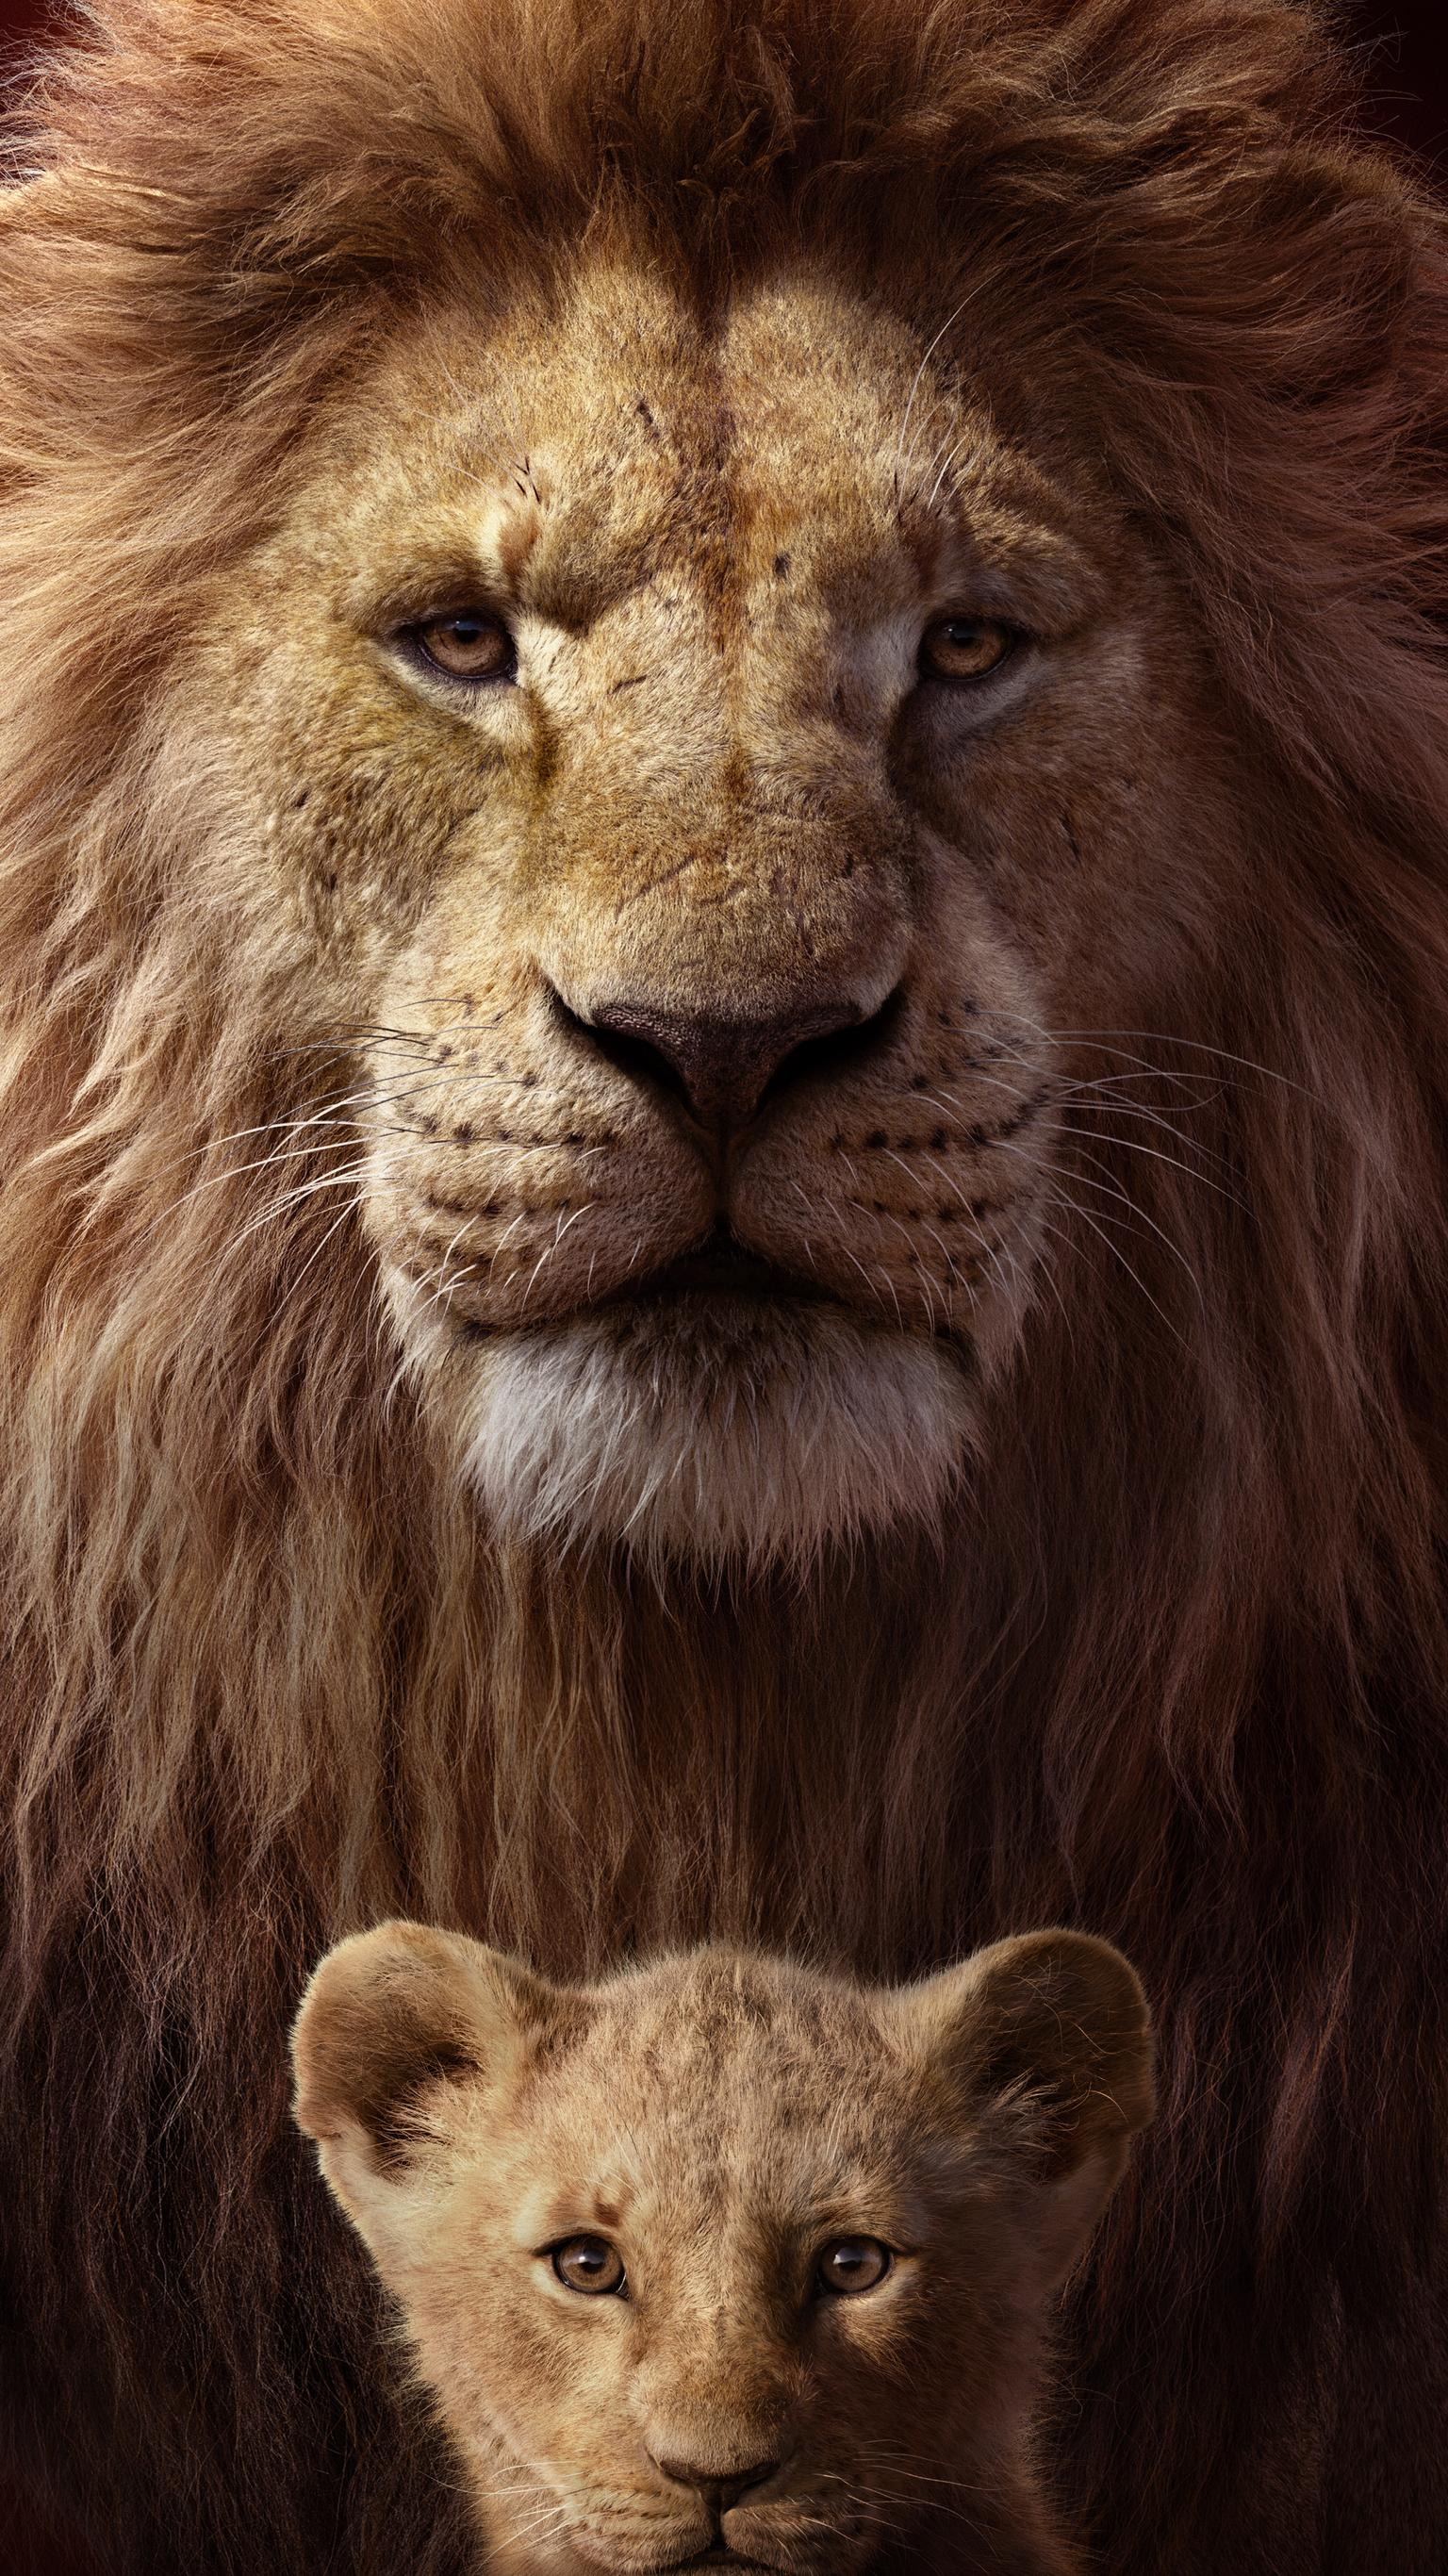 The Lion King 2019 Wallpapers Top Free The Lion King 2019